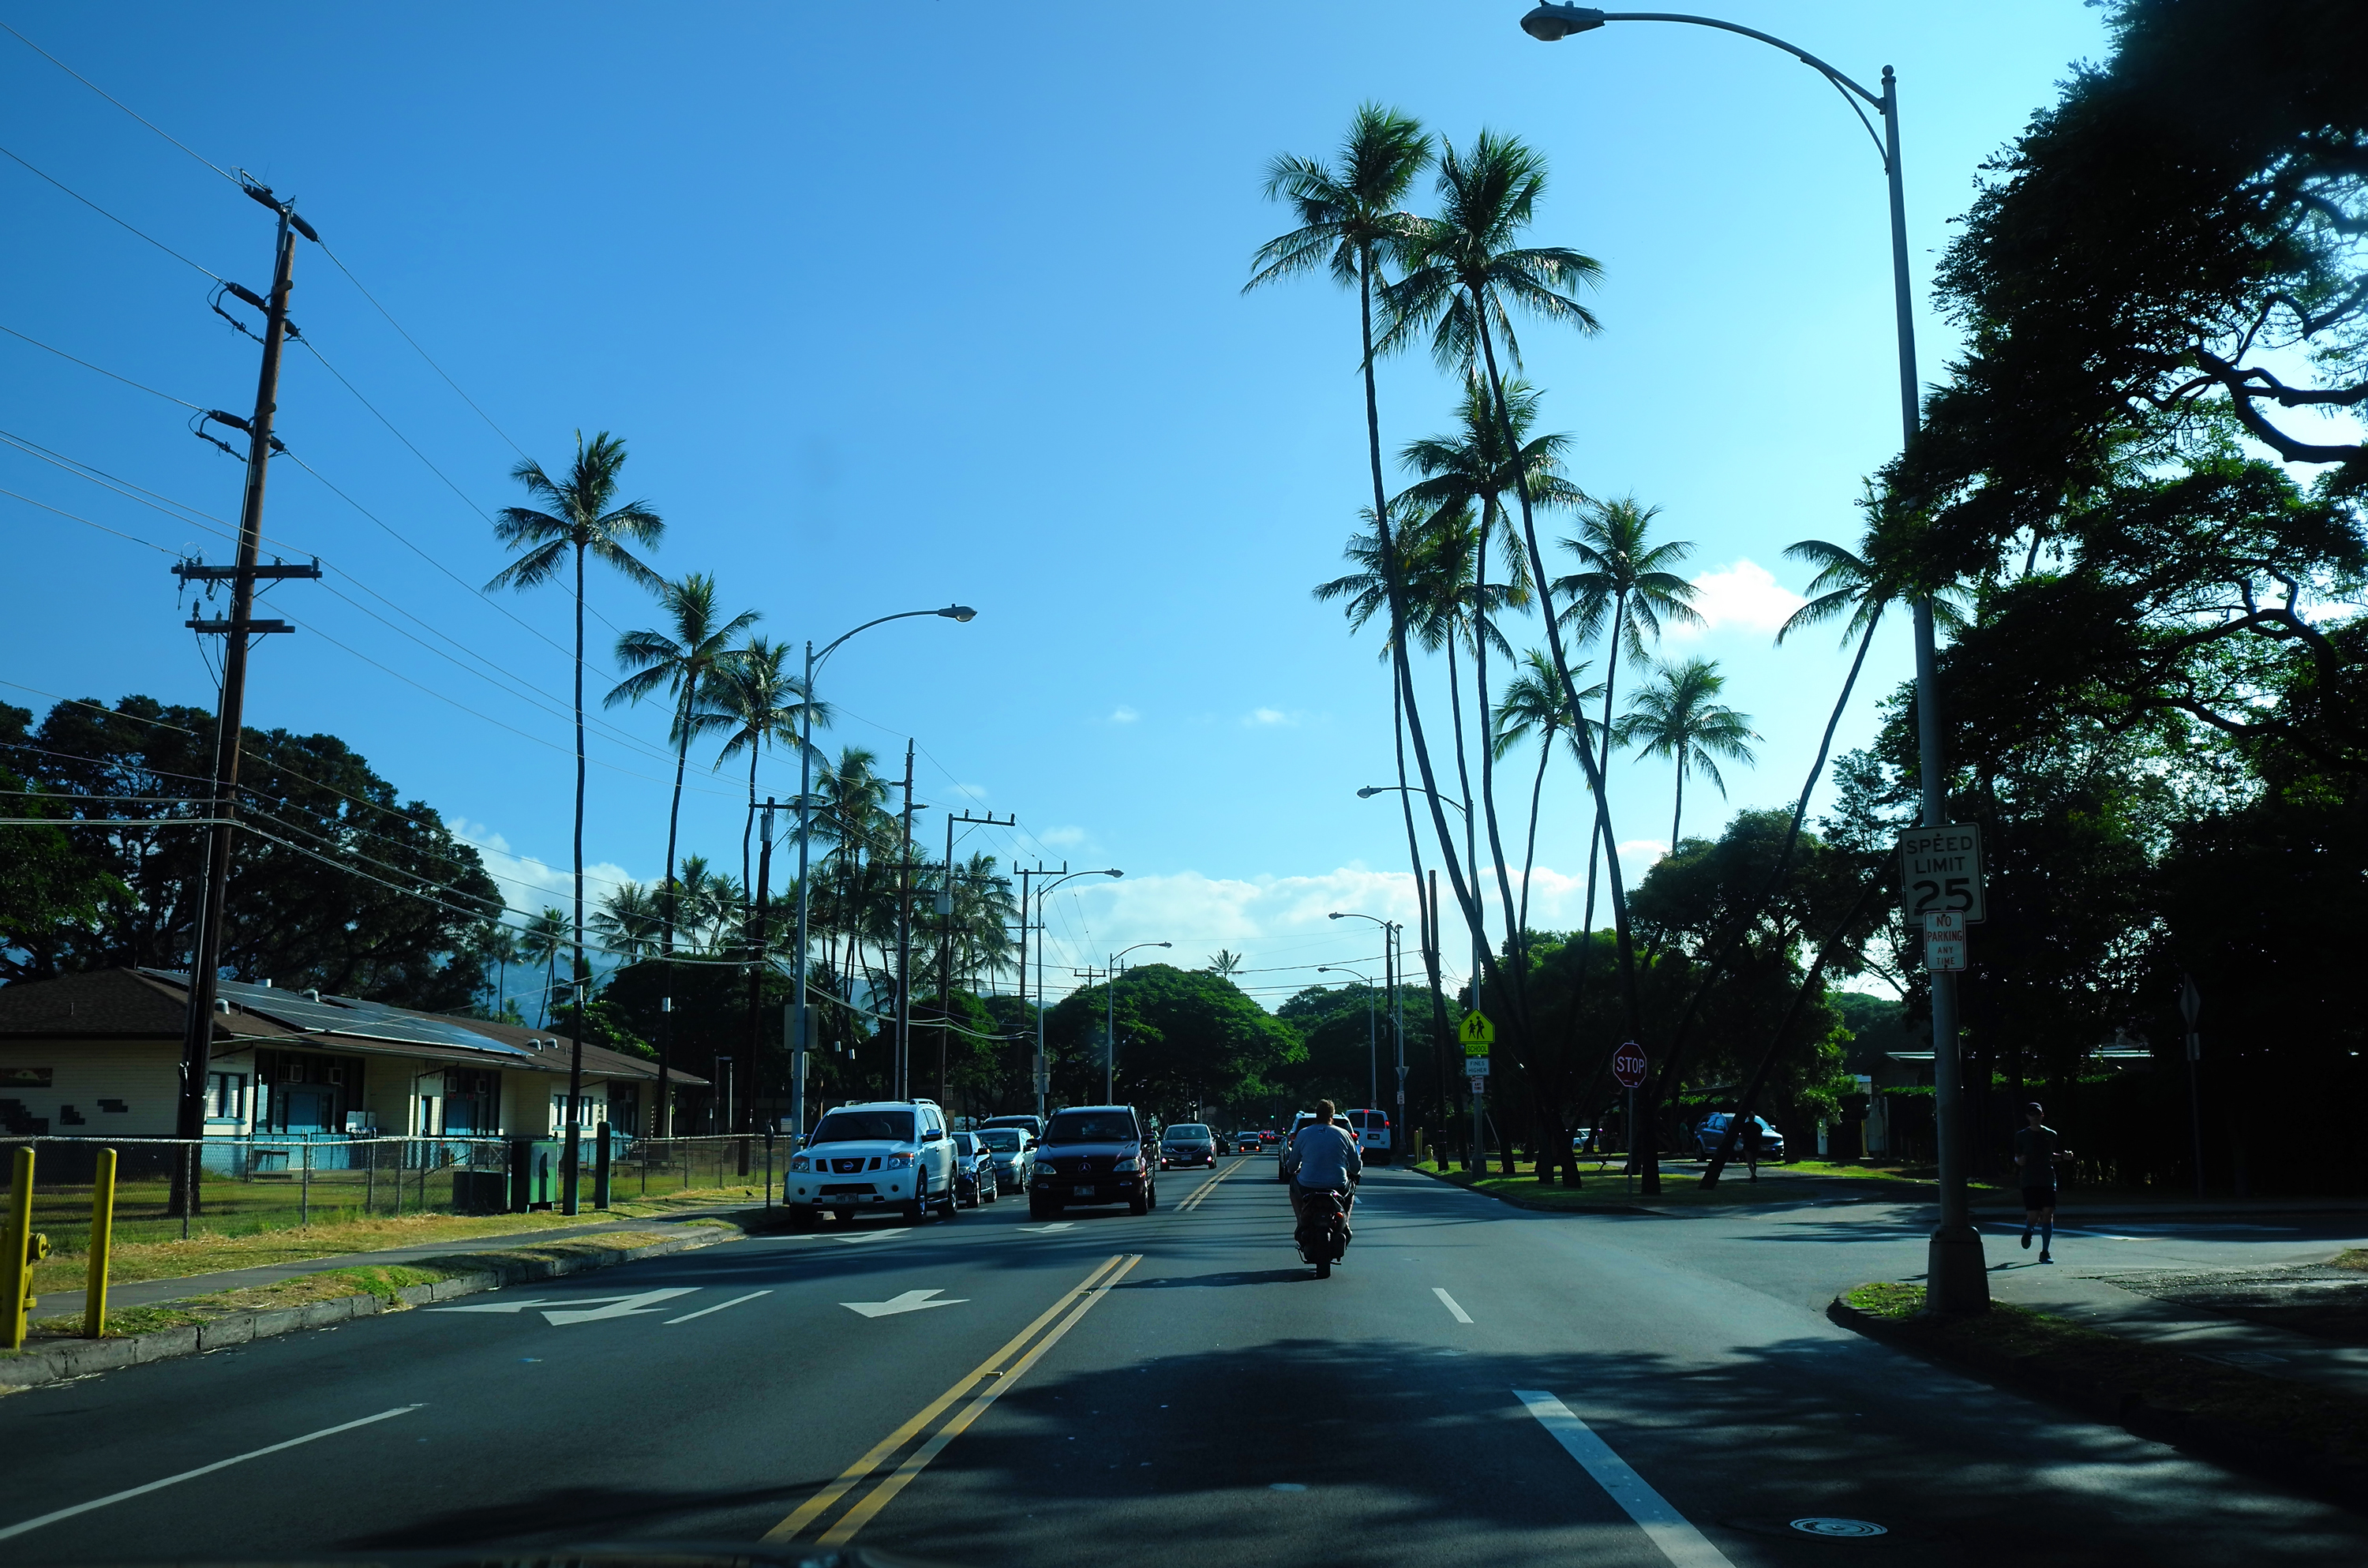 Morning in Kapahulu ave